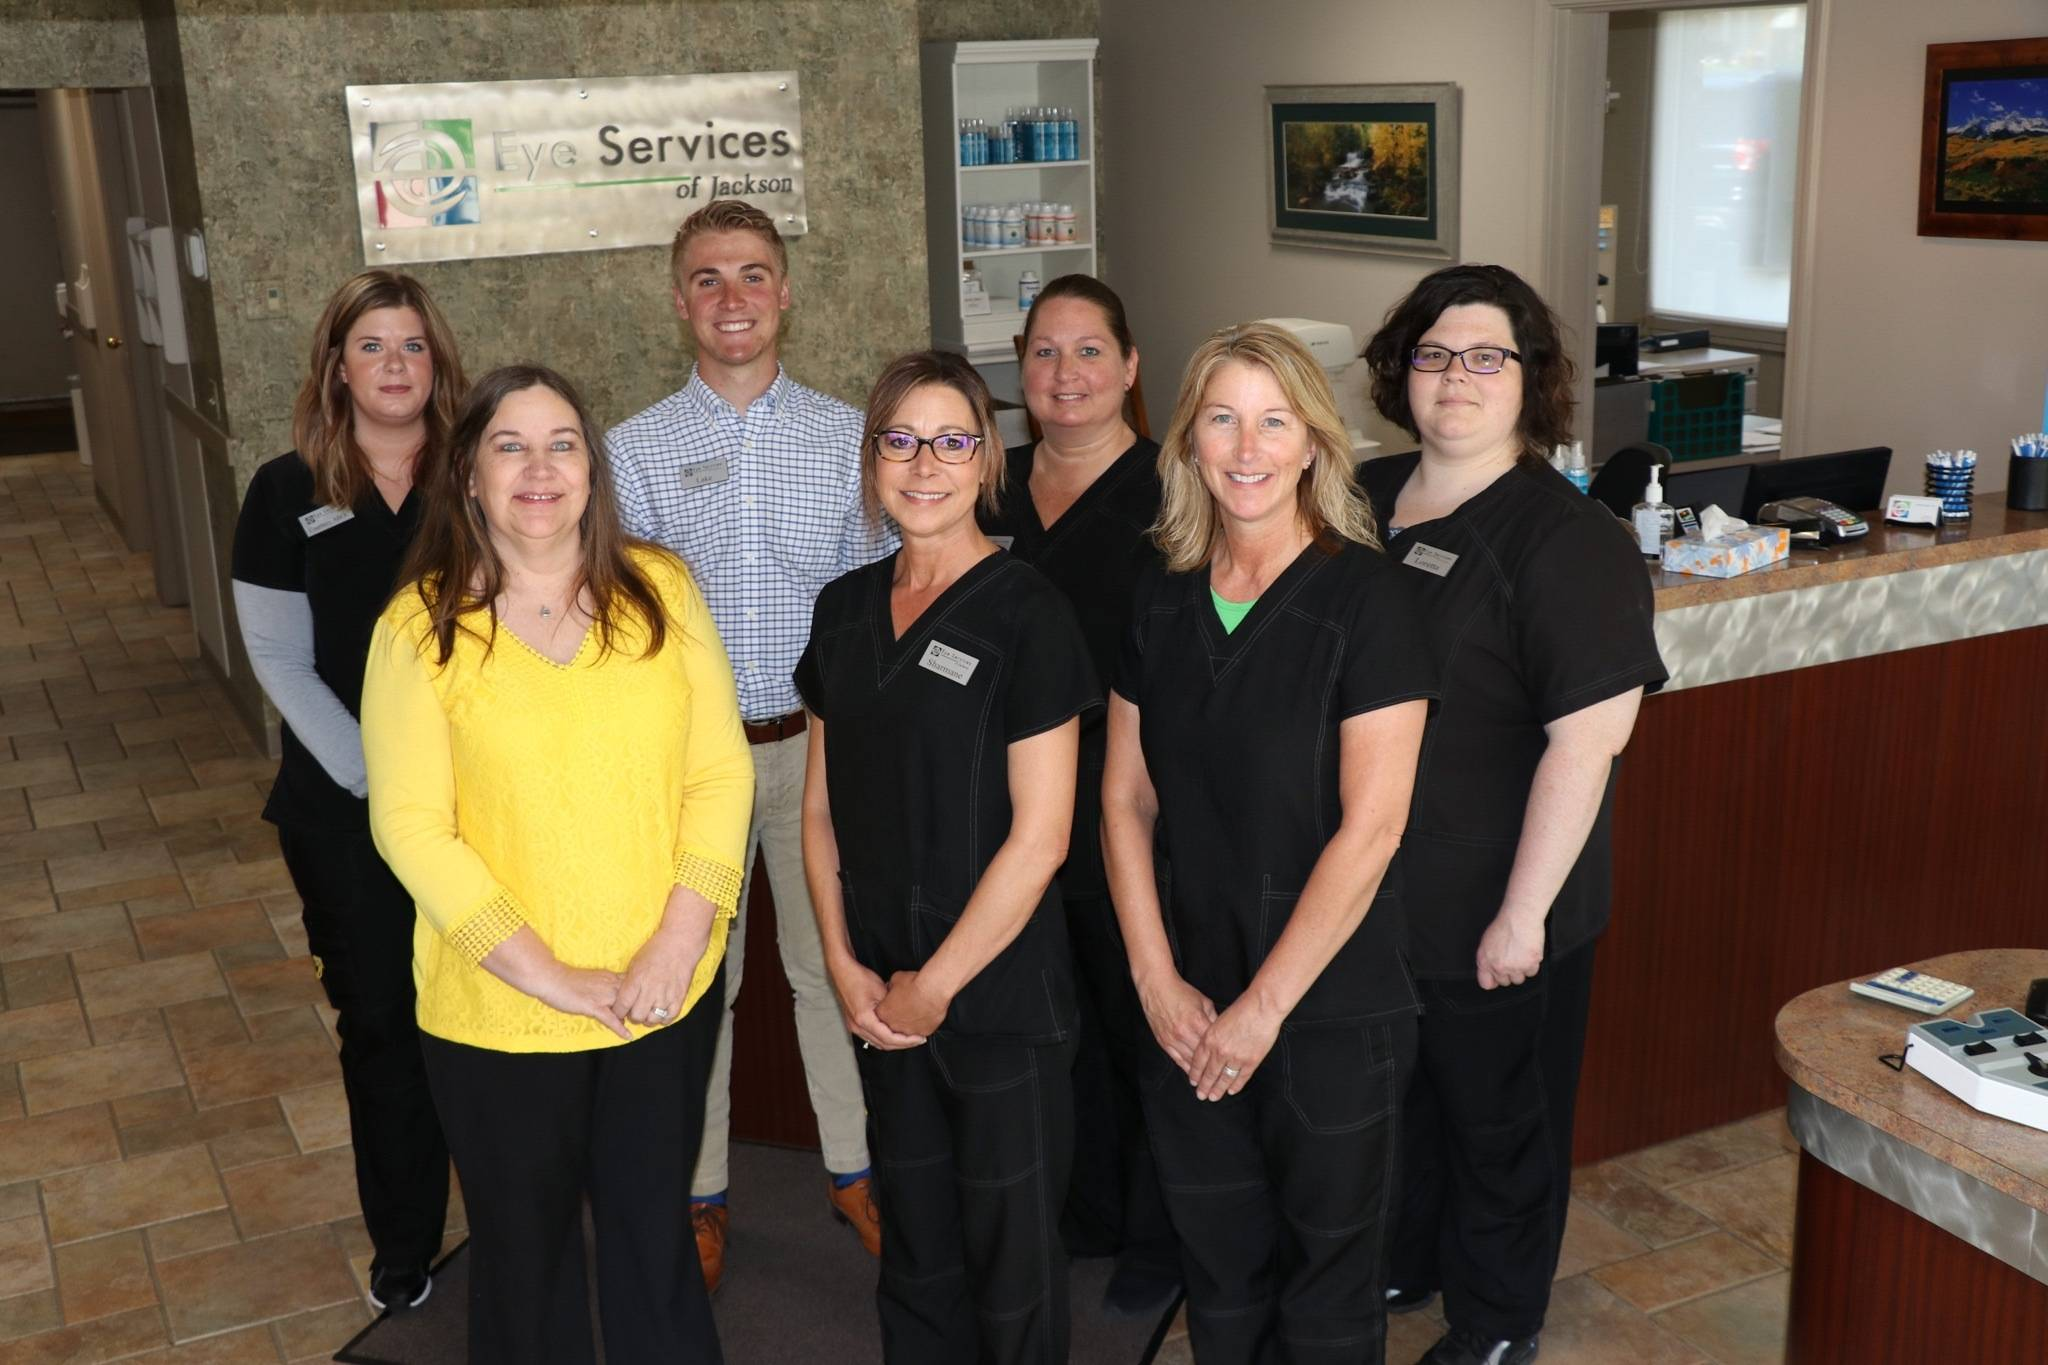 eye-services-jackson-staff-photo-6-1-18